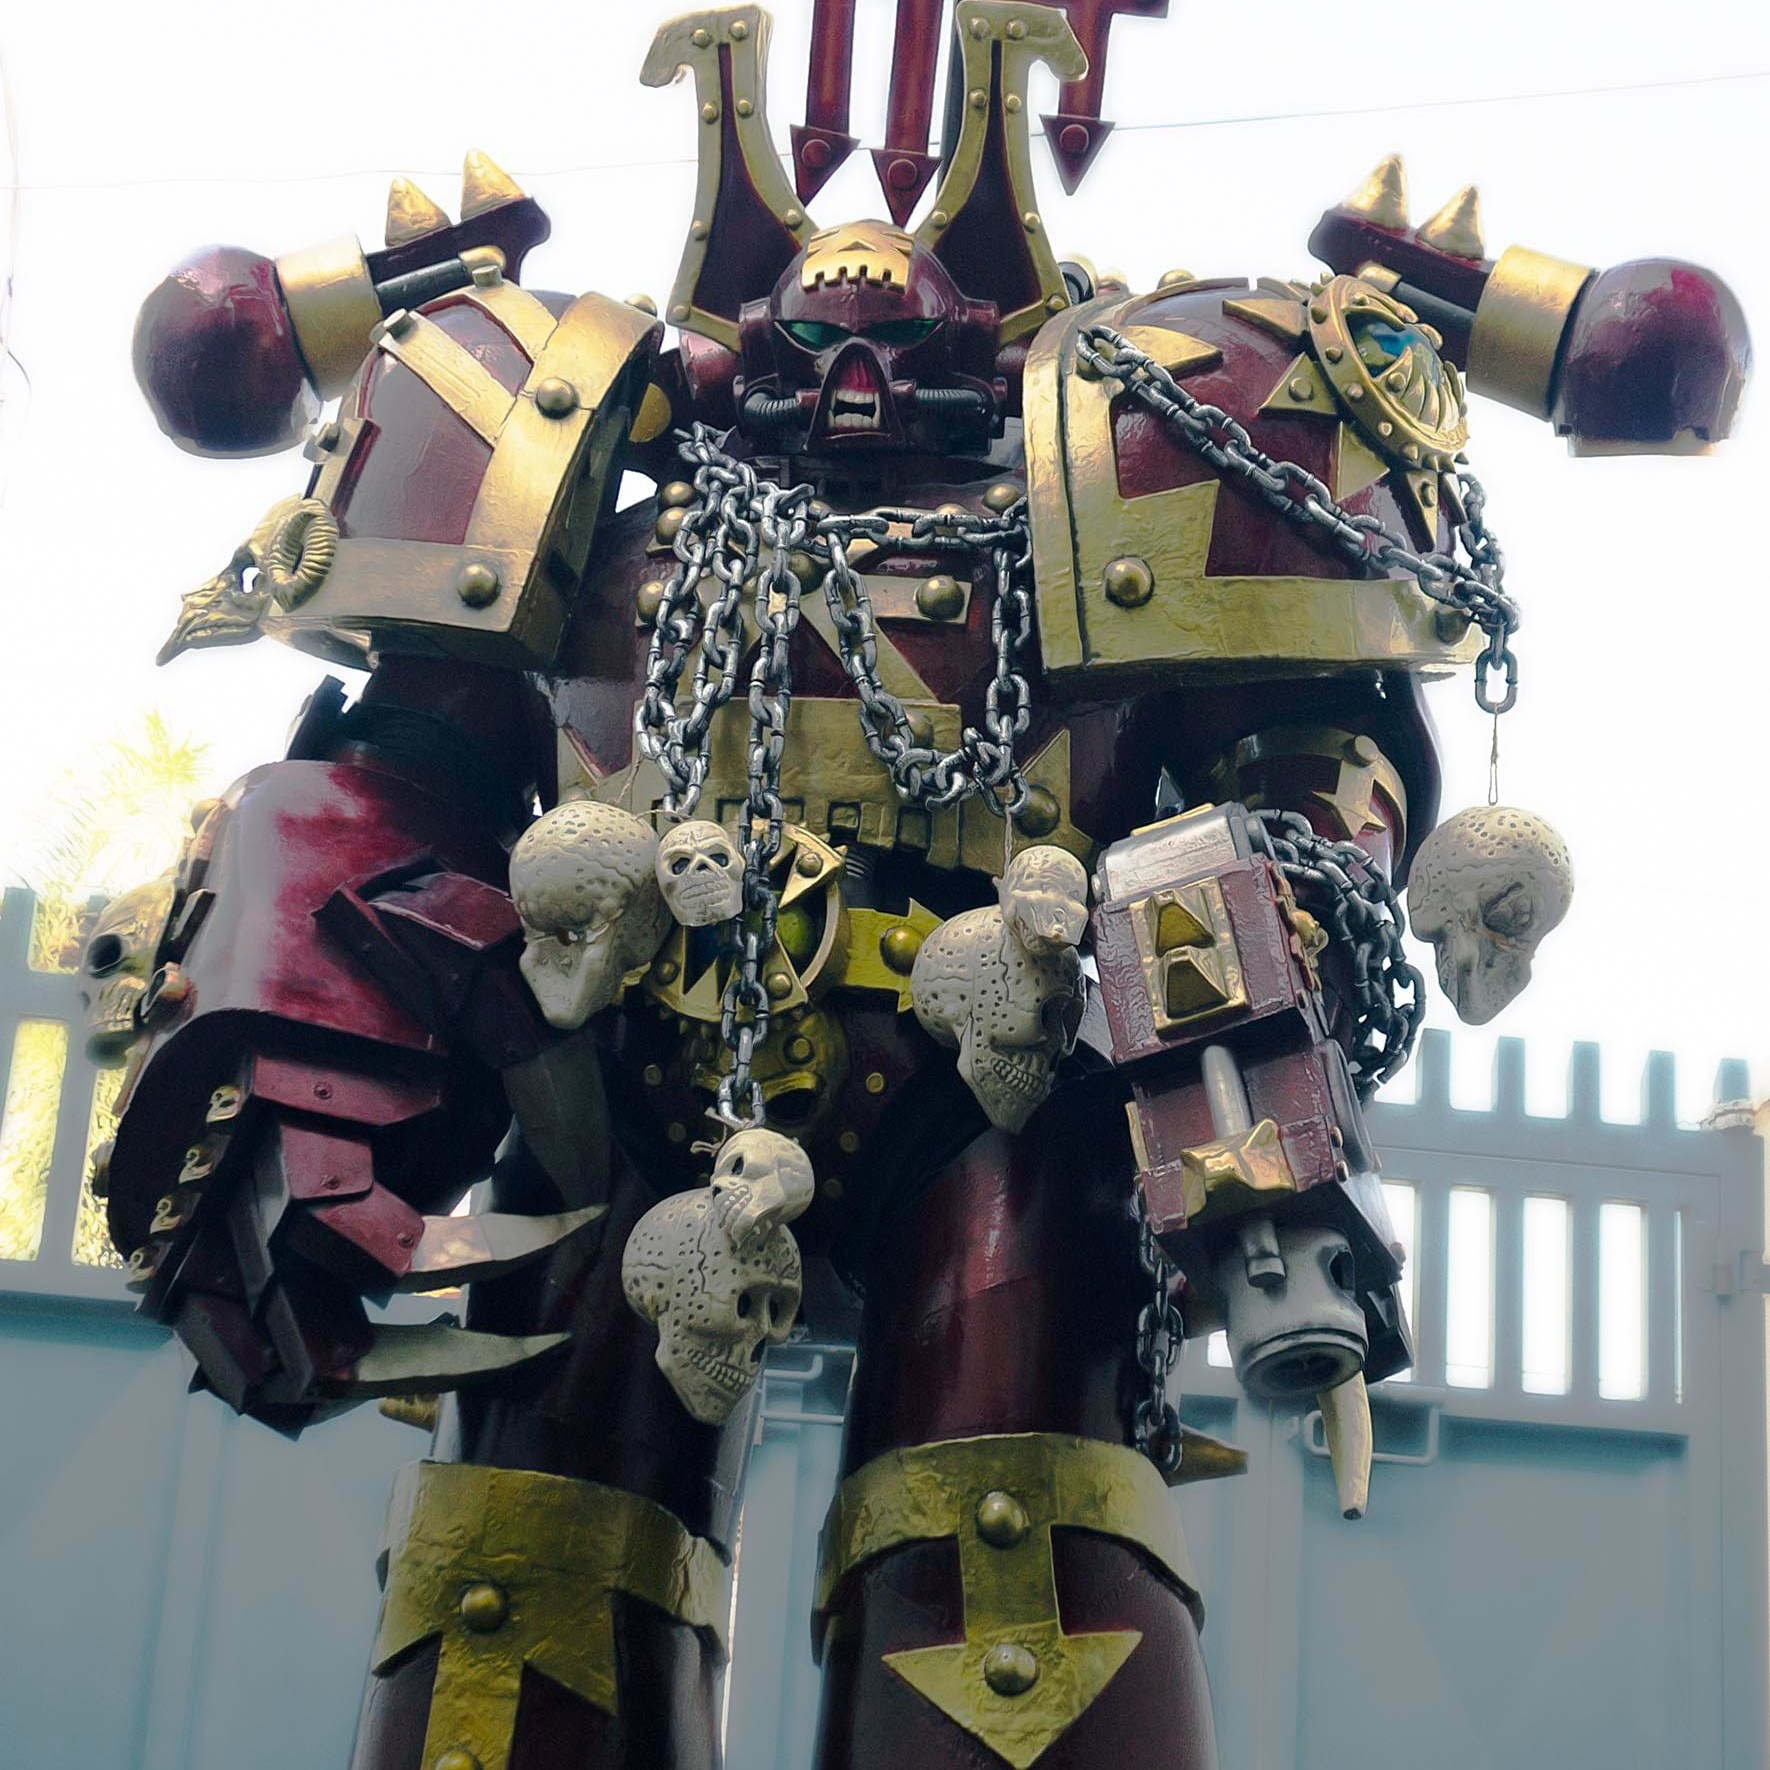 Giant, bulky armor with lots of spikes